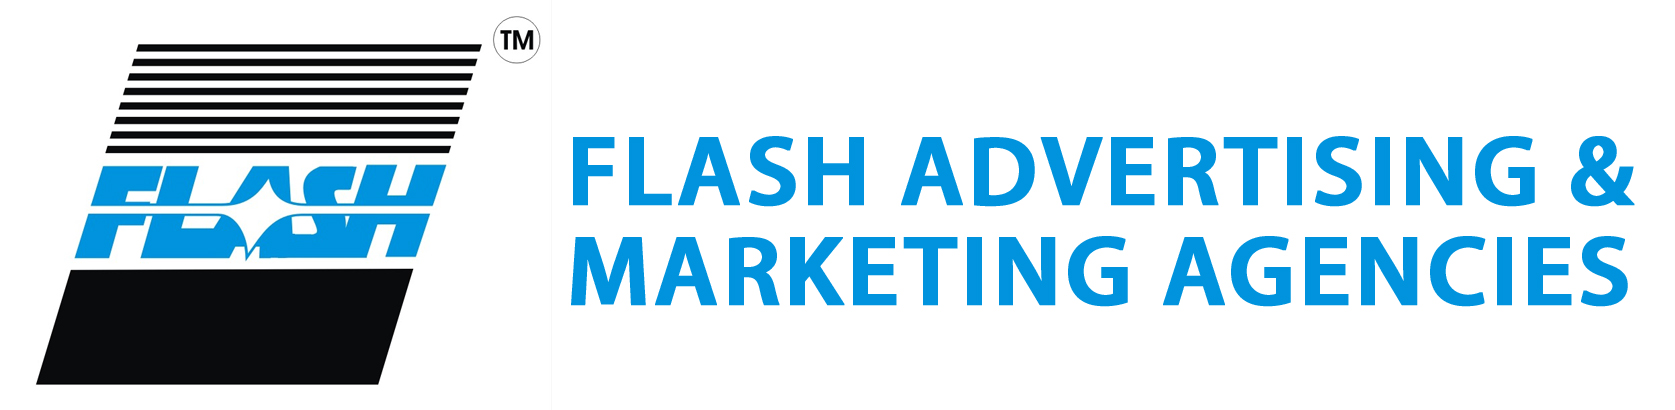 Flash Advertising and Marketing Agency logo